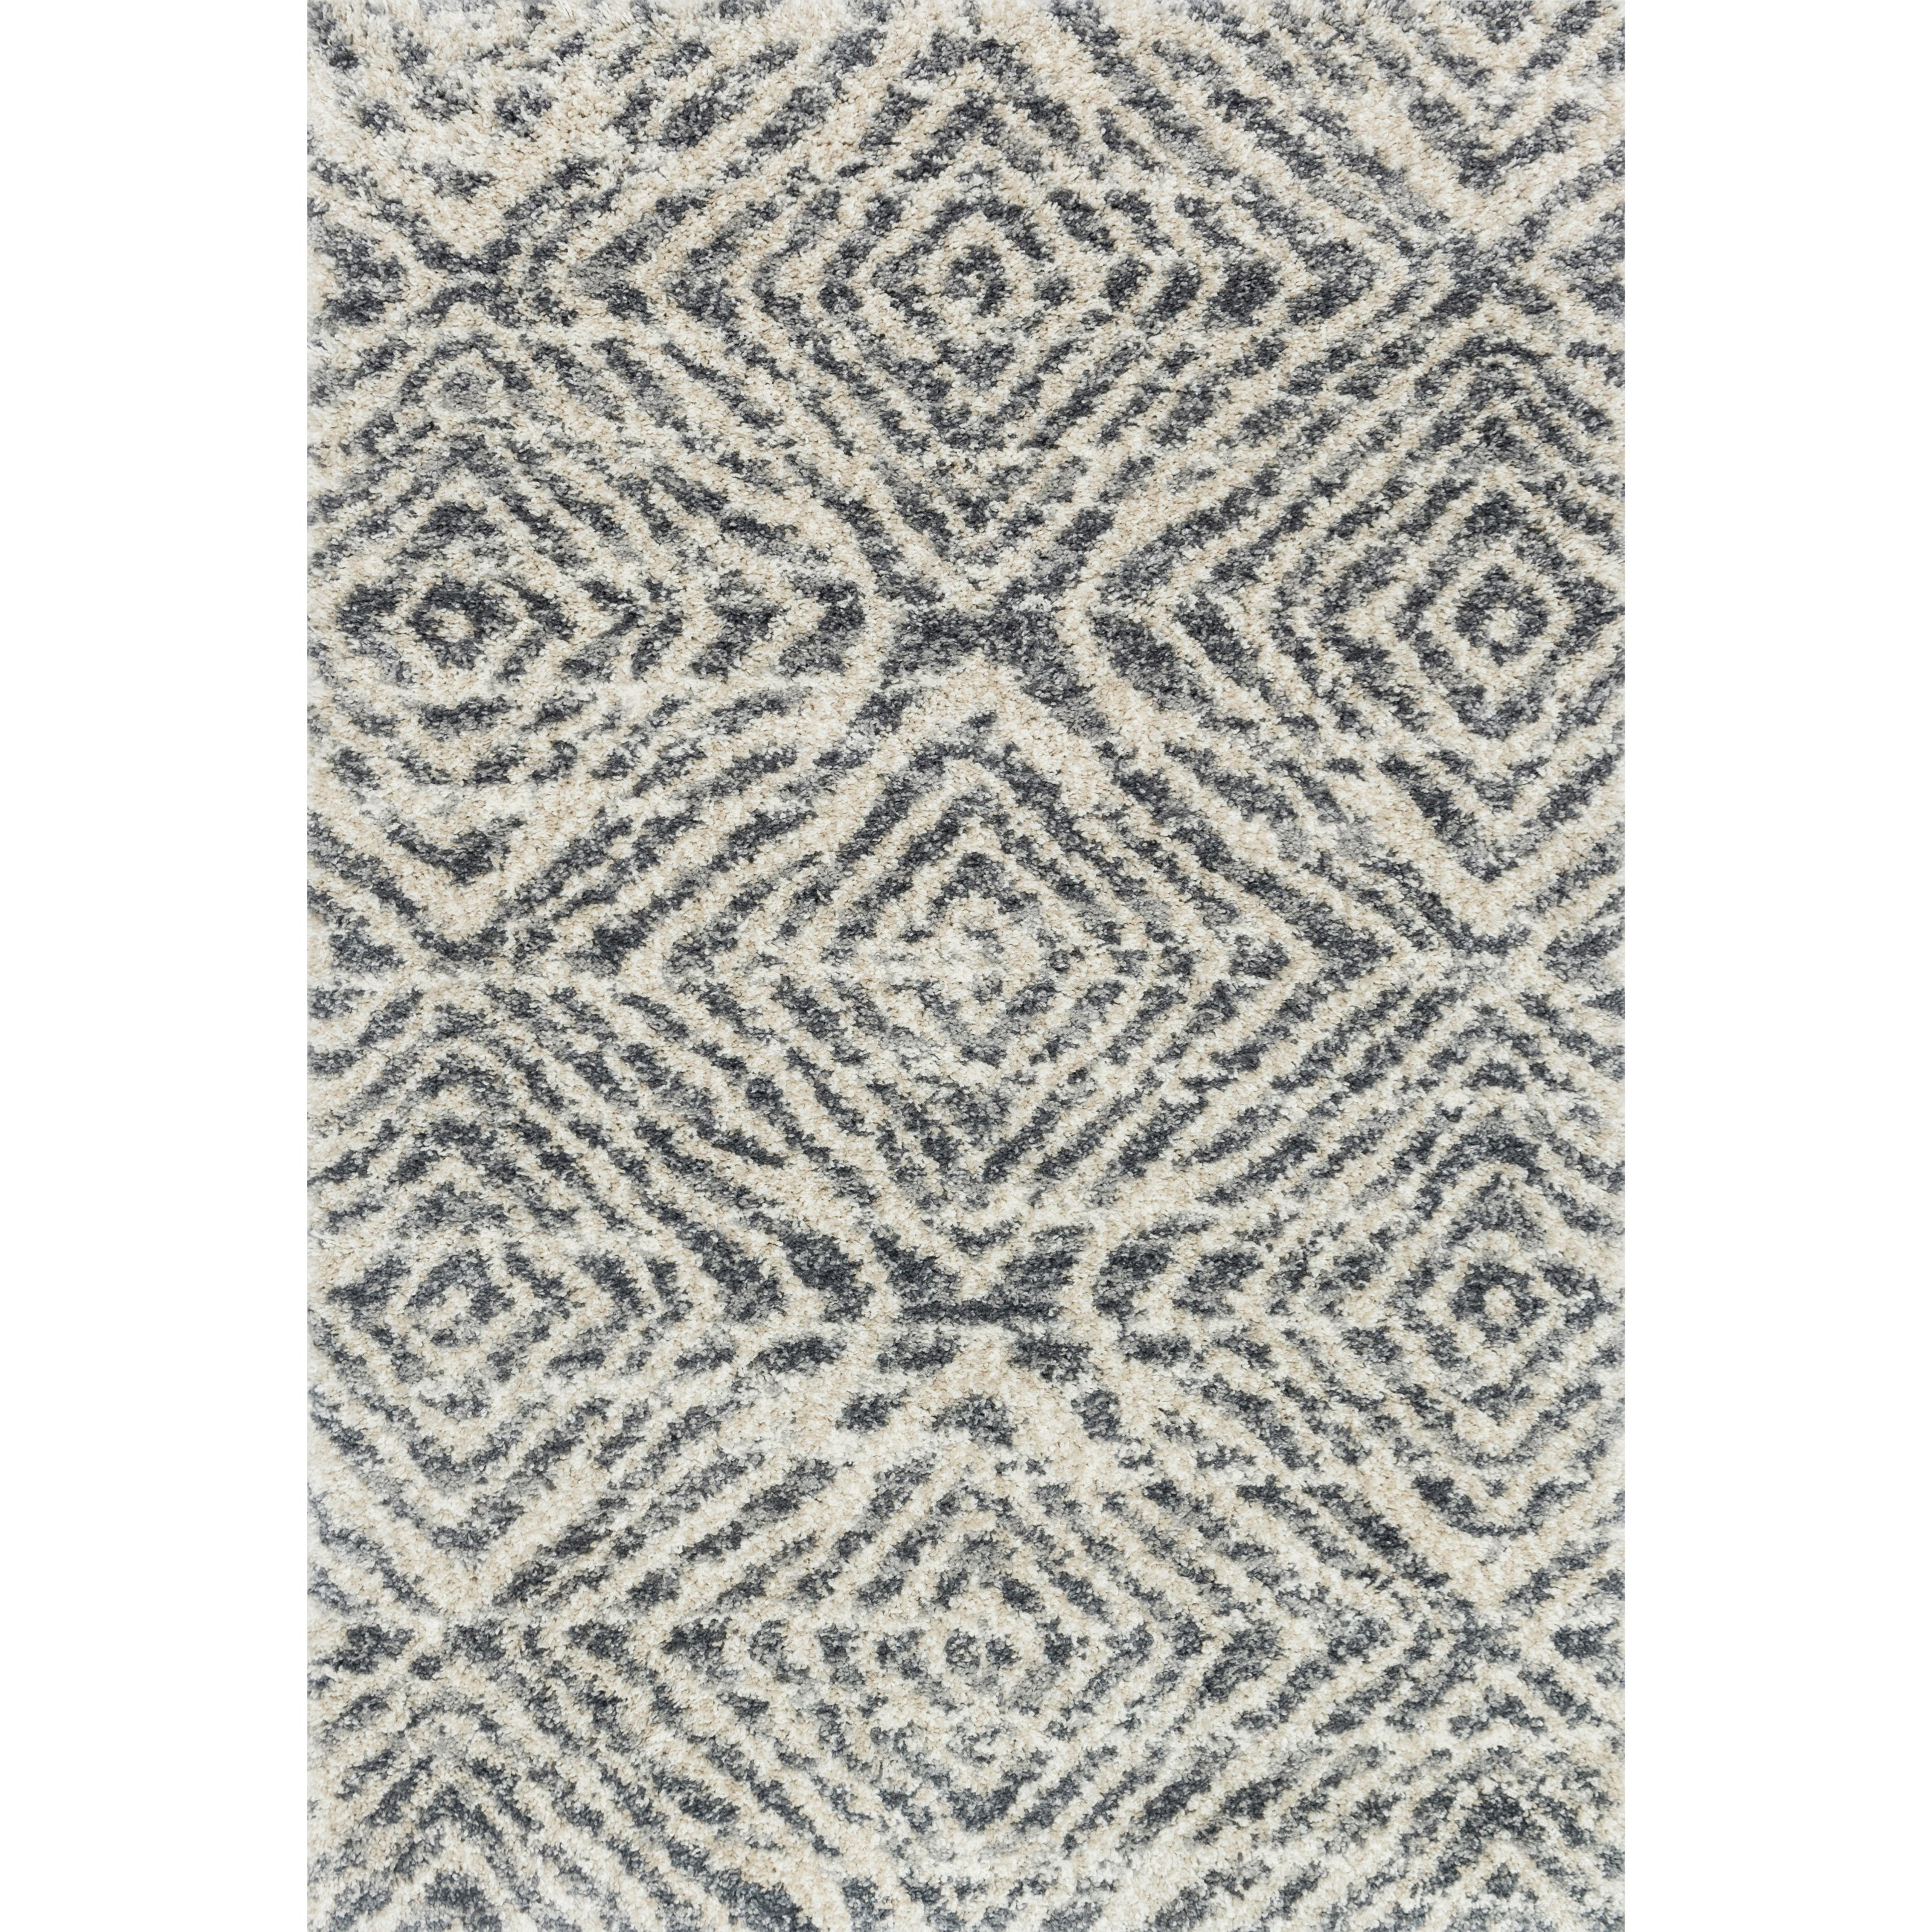 "Quincy 2'3"" x 12' Graphite / Sand Rug by Loloi Rugs at Virginia Furniture Market"